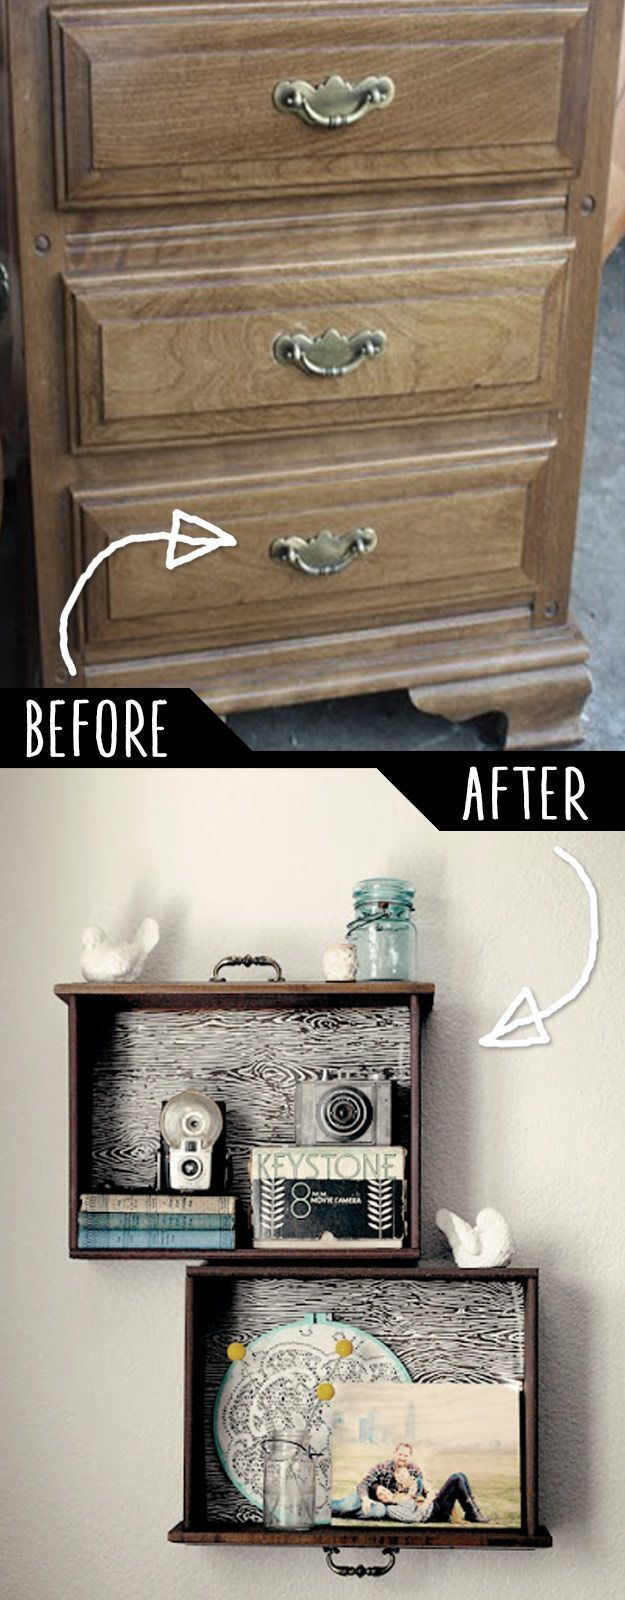 39 Clever DIY Furniture Hacks - Page 3 of 8 - DIY Joy | Liebe grüße ...